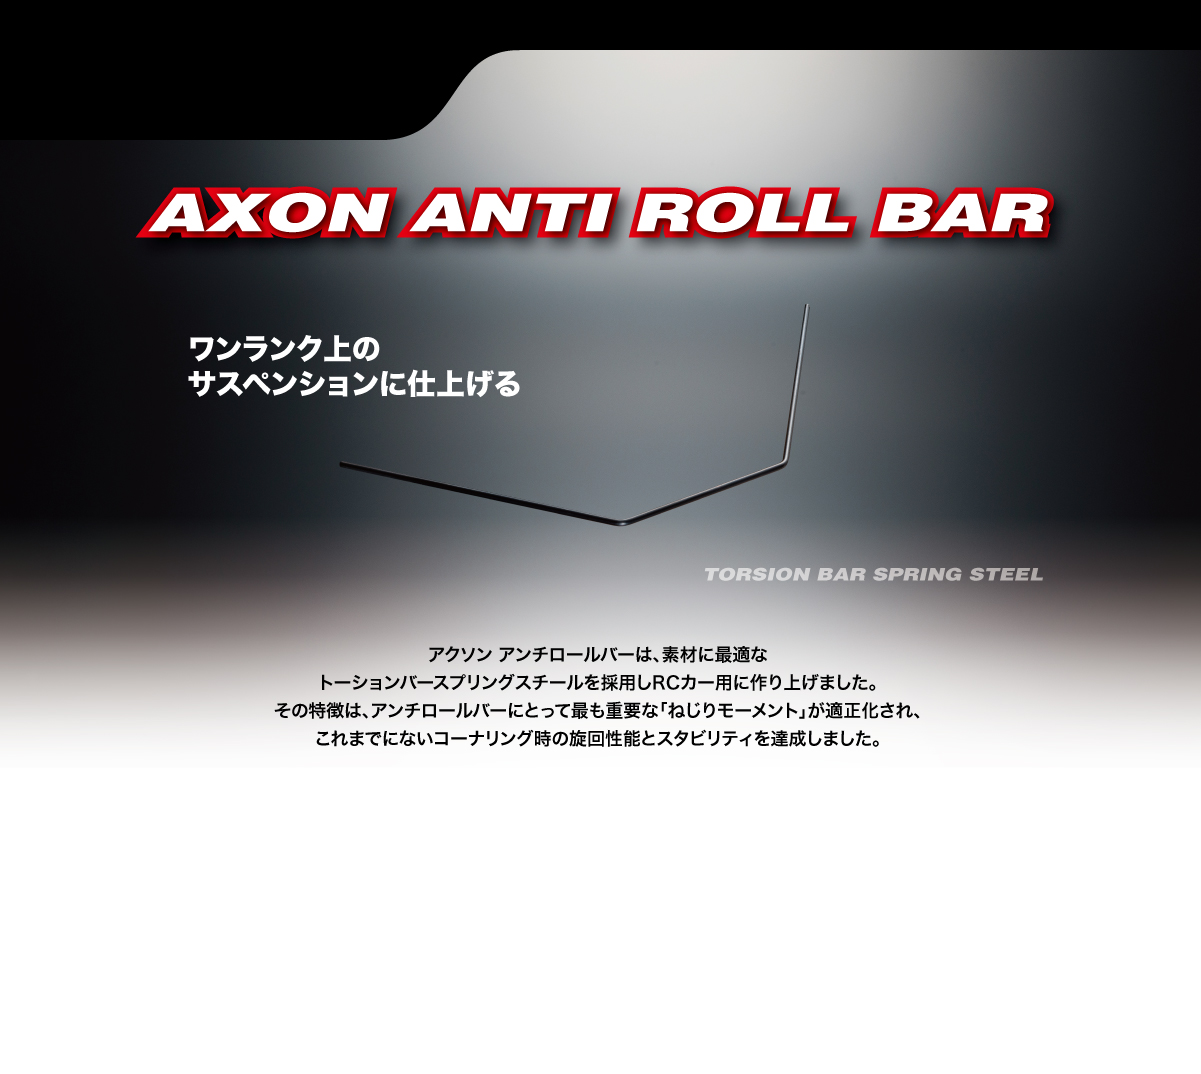 AXON AT-YF-112 AXON ANTI ROLL BAR BD9 FRONT 1.2mm